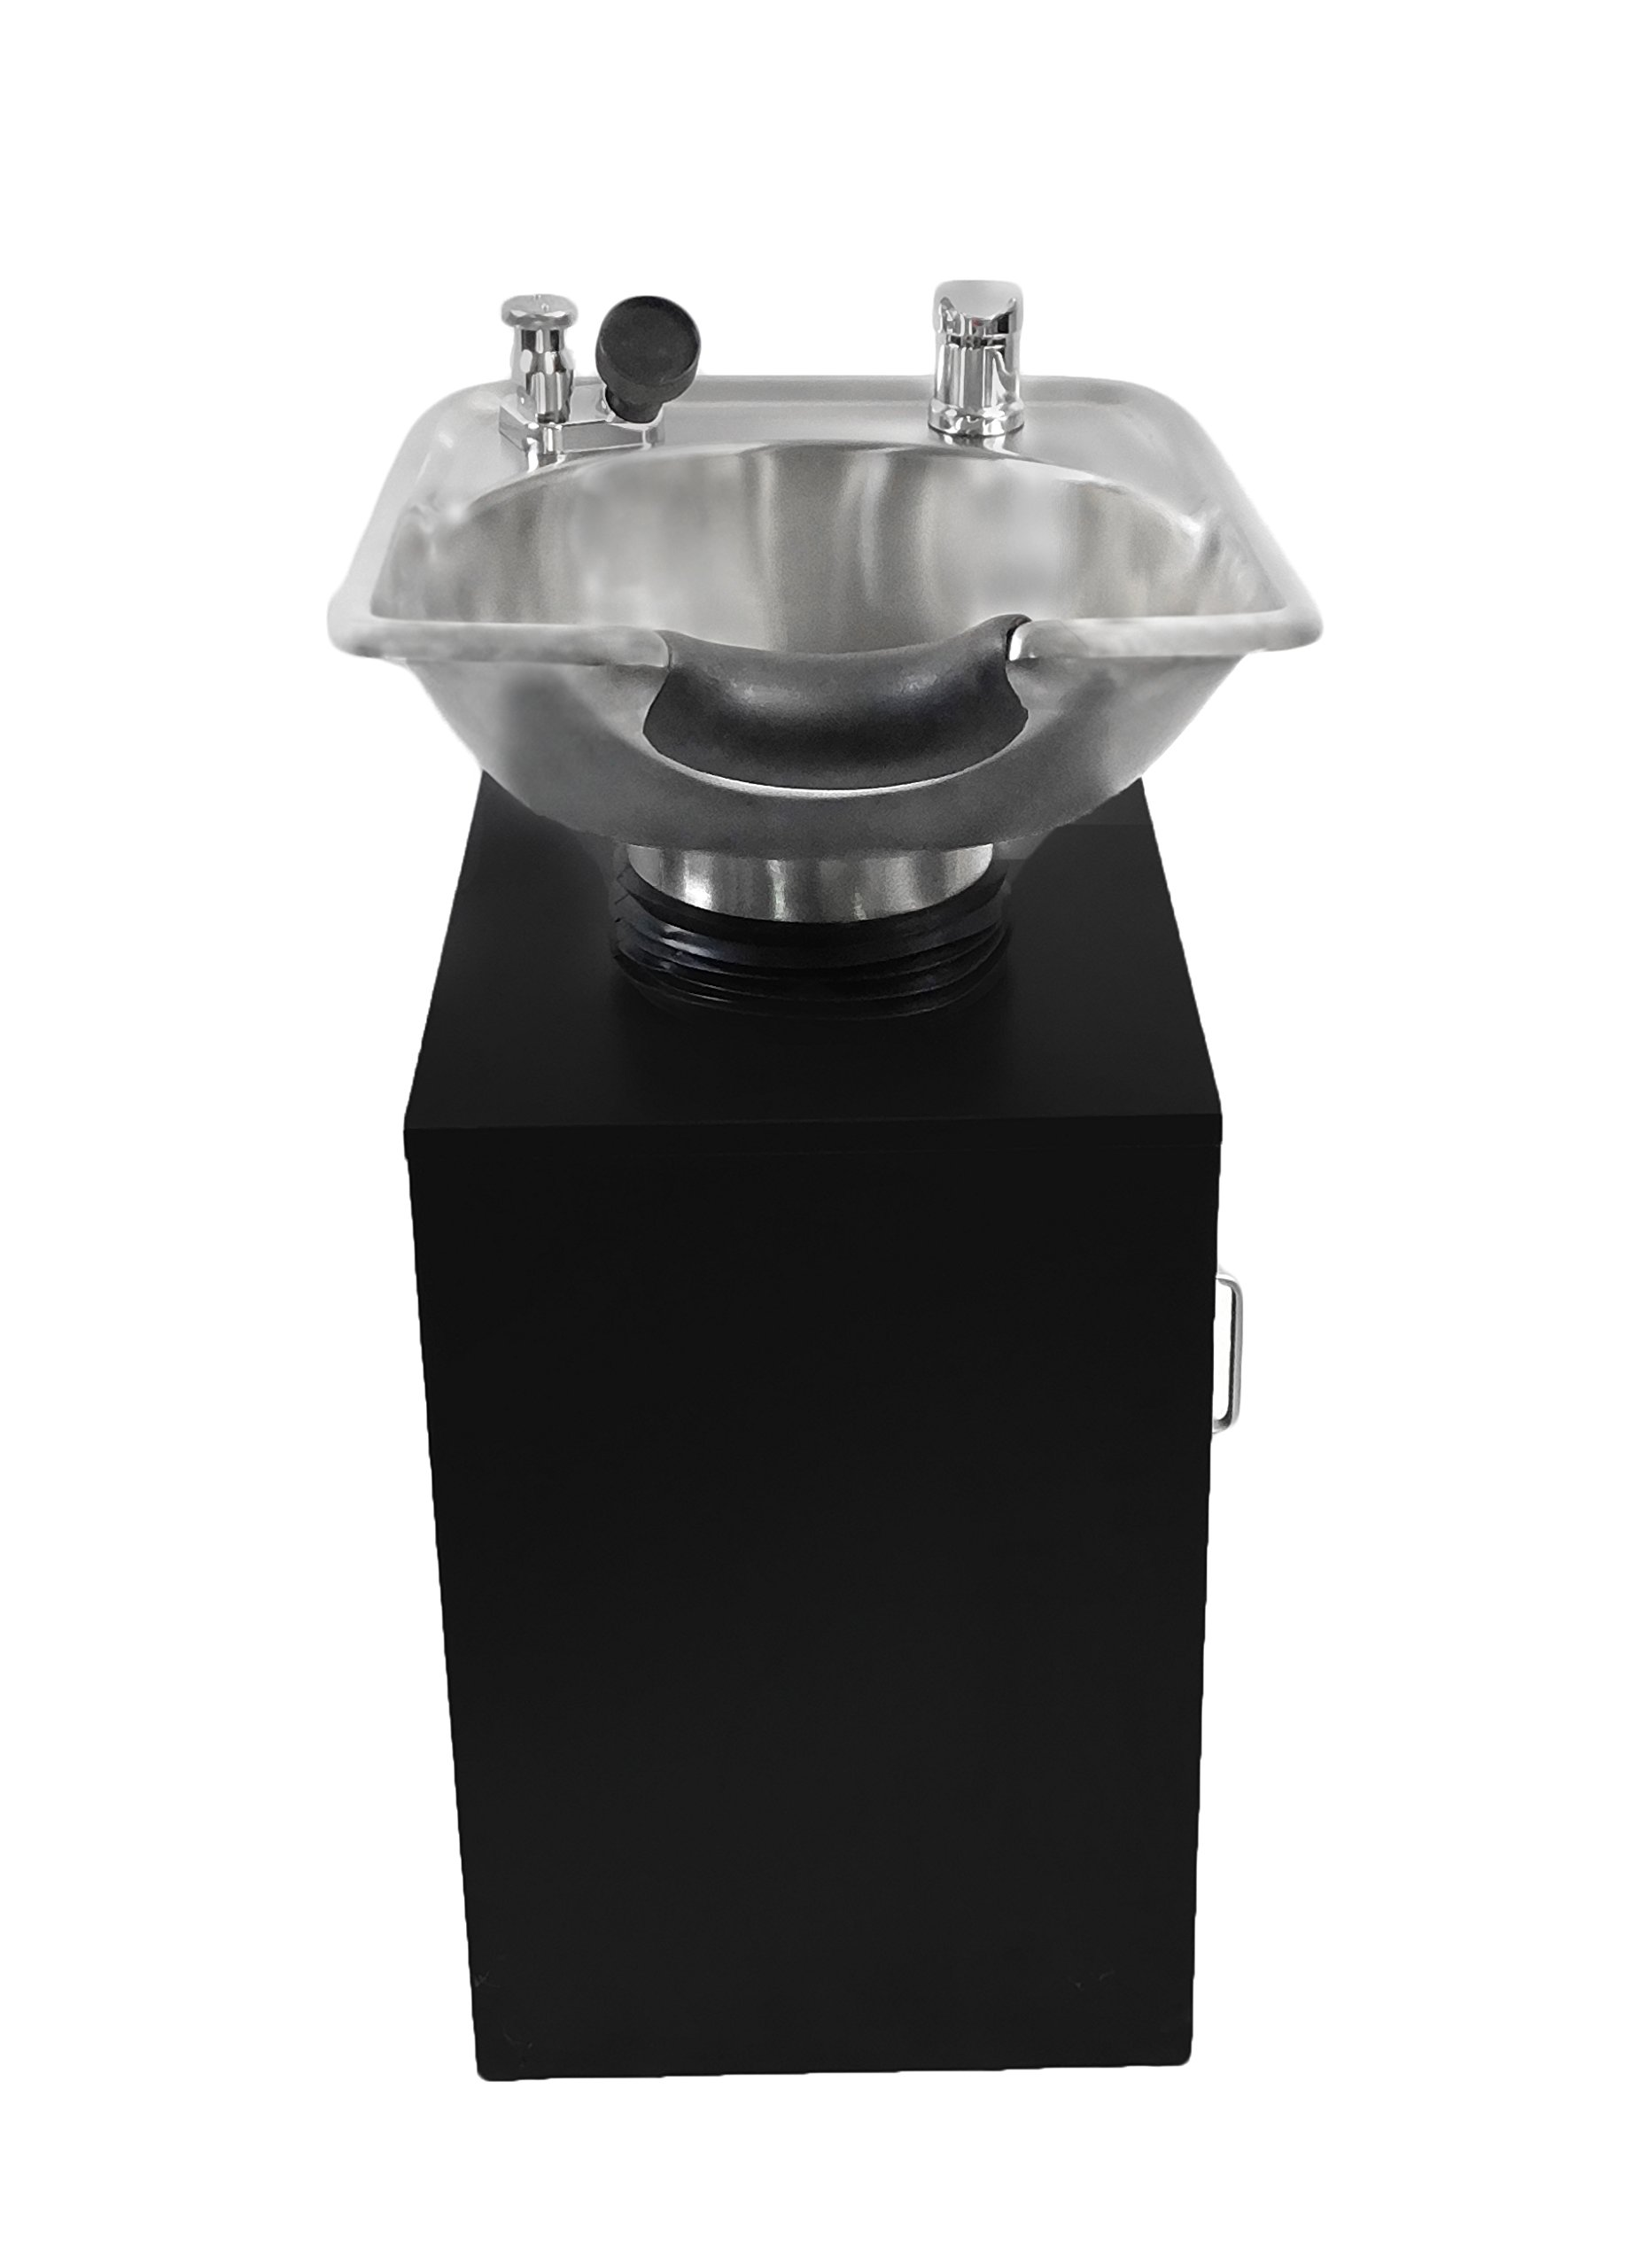 TILTING Brushed Stainless Steel Salon Shampoo Bowl with Black Cabinet Spa Equipment TLC-1567Tilt-C by eMark Beauty (Image #2)